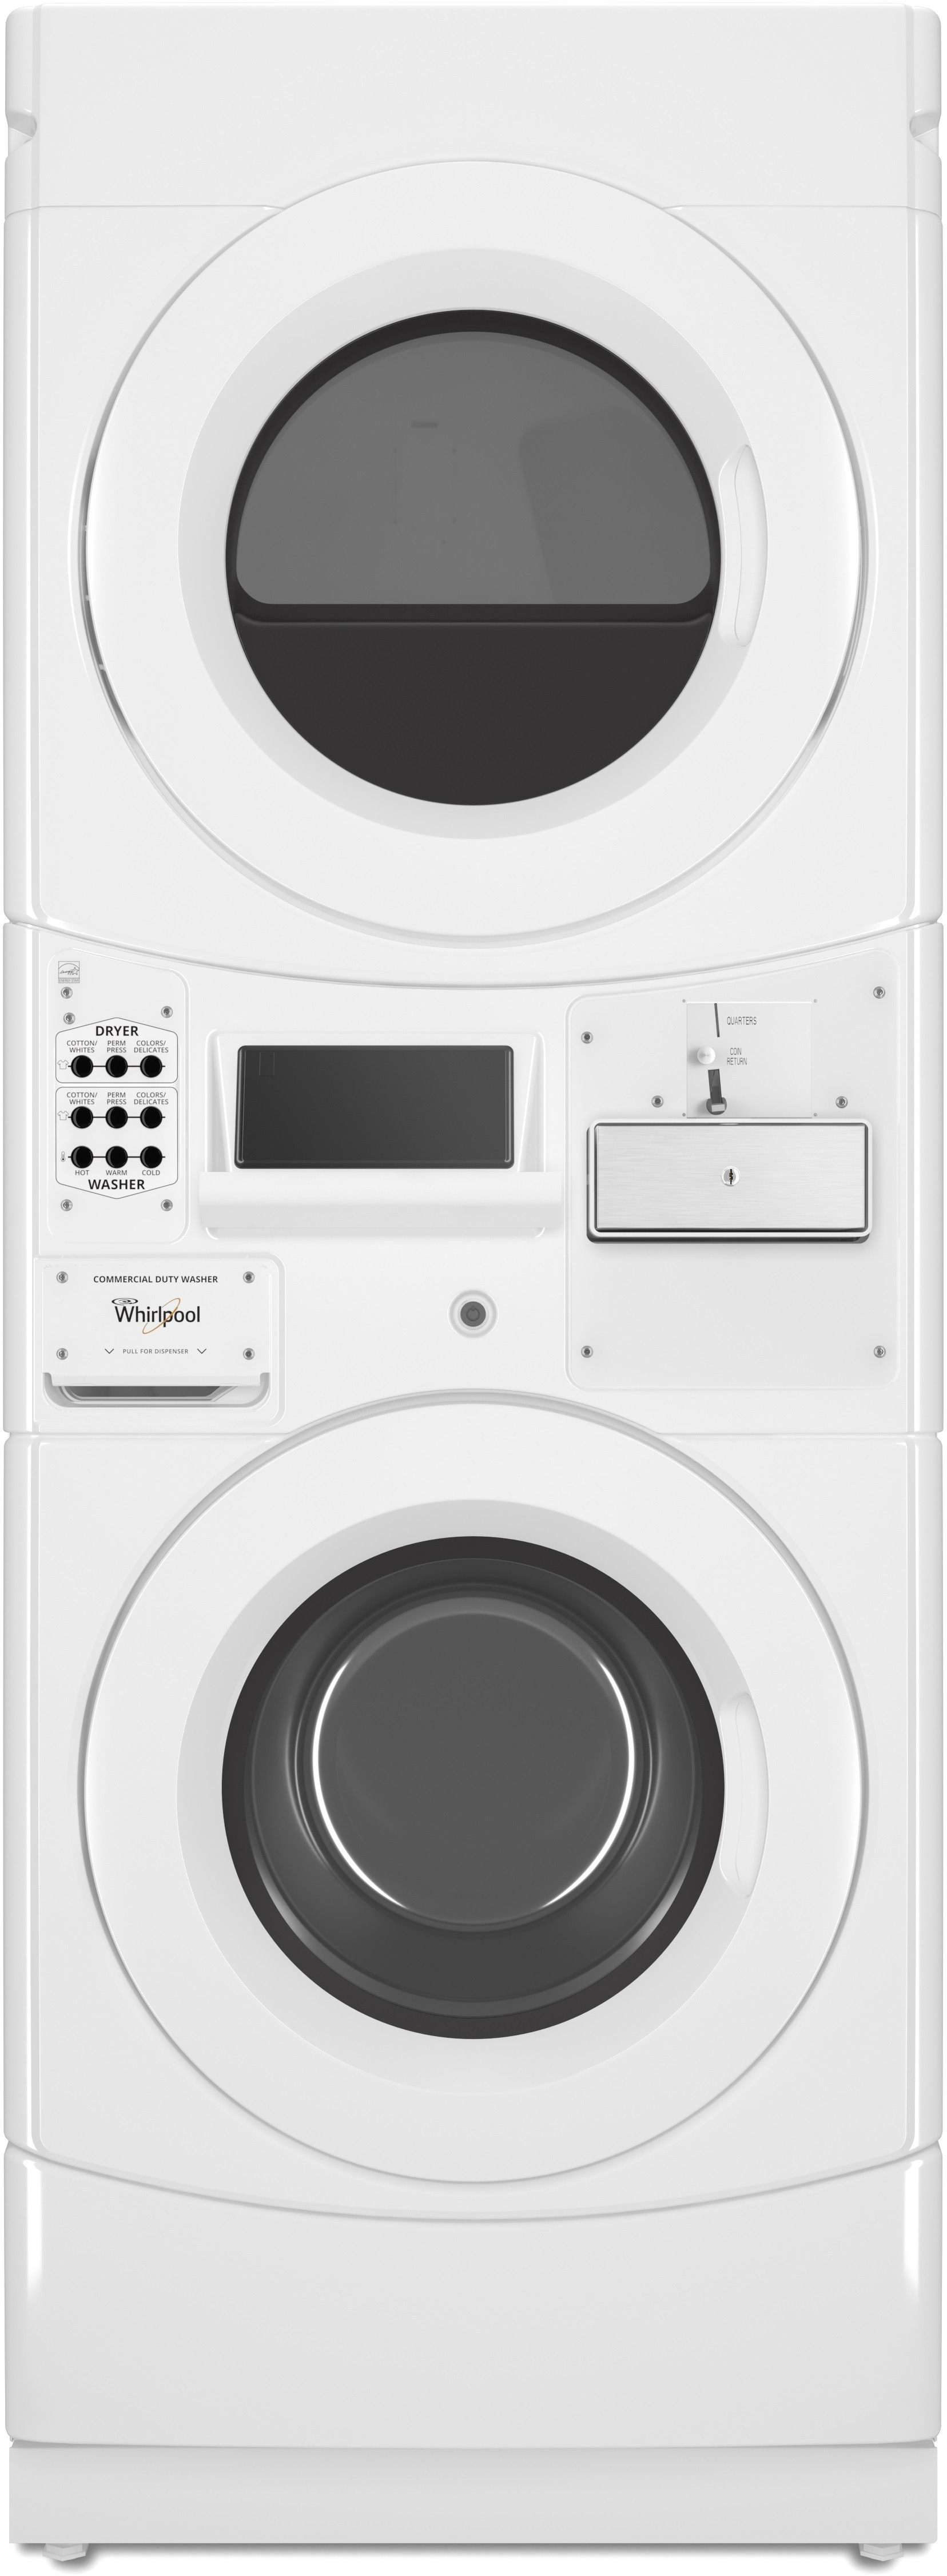 Whirlpool Commercial Laundry Cet9000gq Commercial Laundry